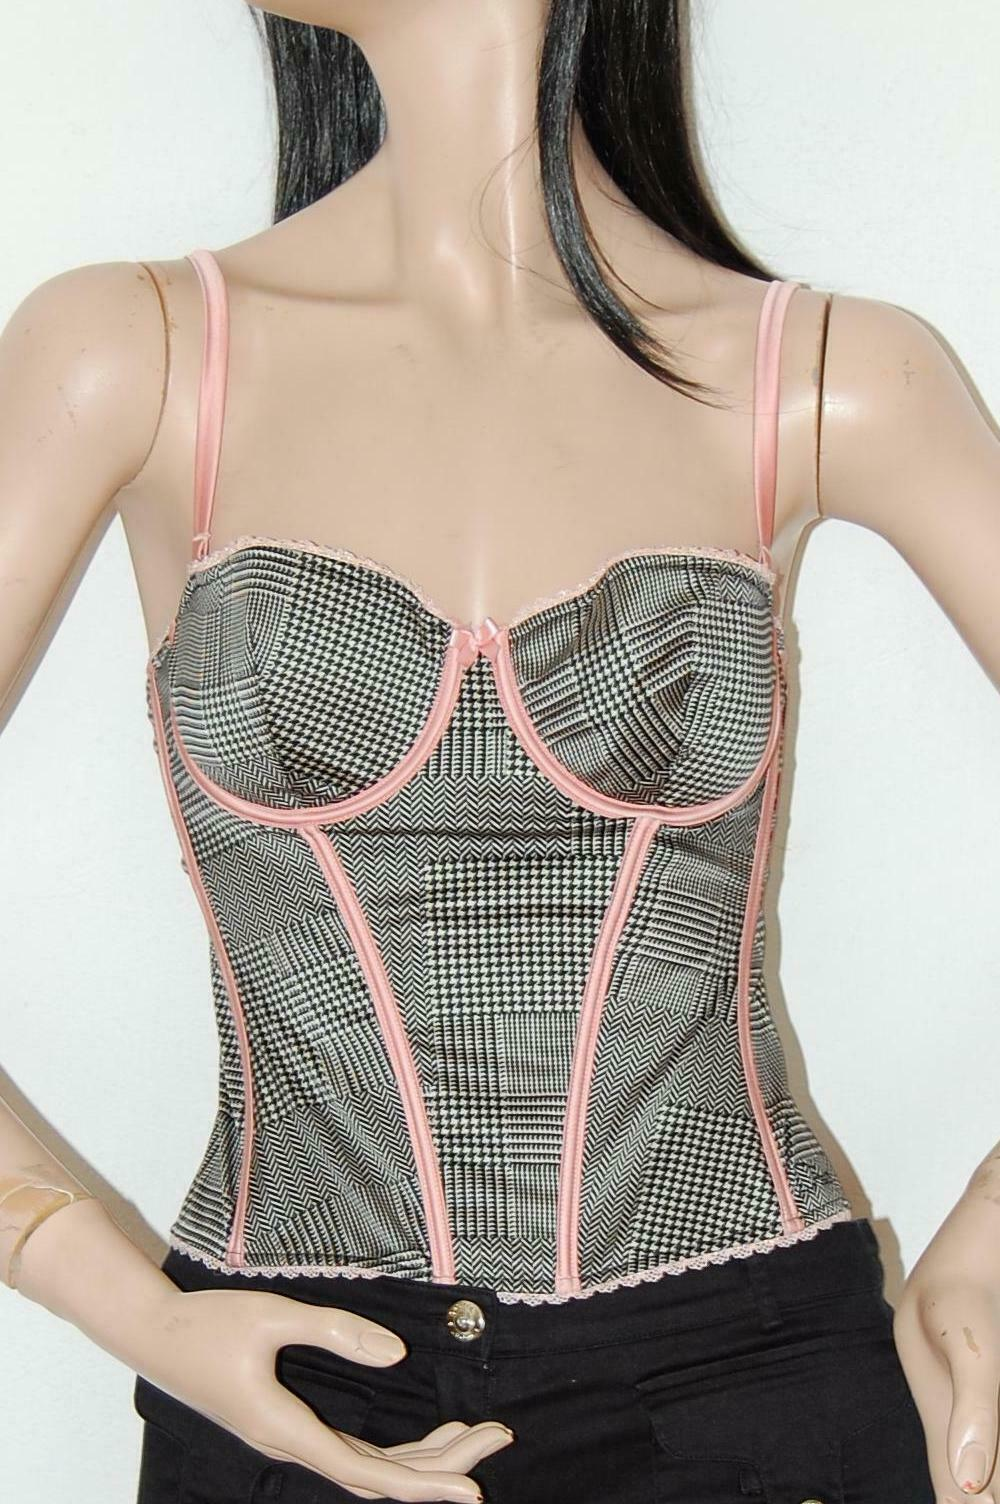 CHRISTIAN DIOR VTG Houndstooth Bustier Corset Top 36B